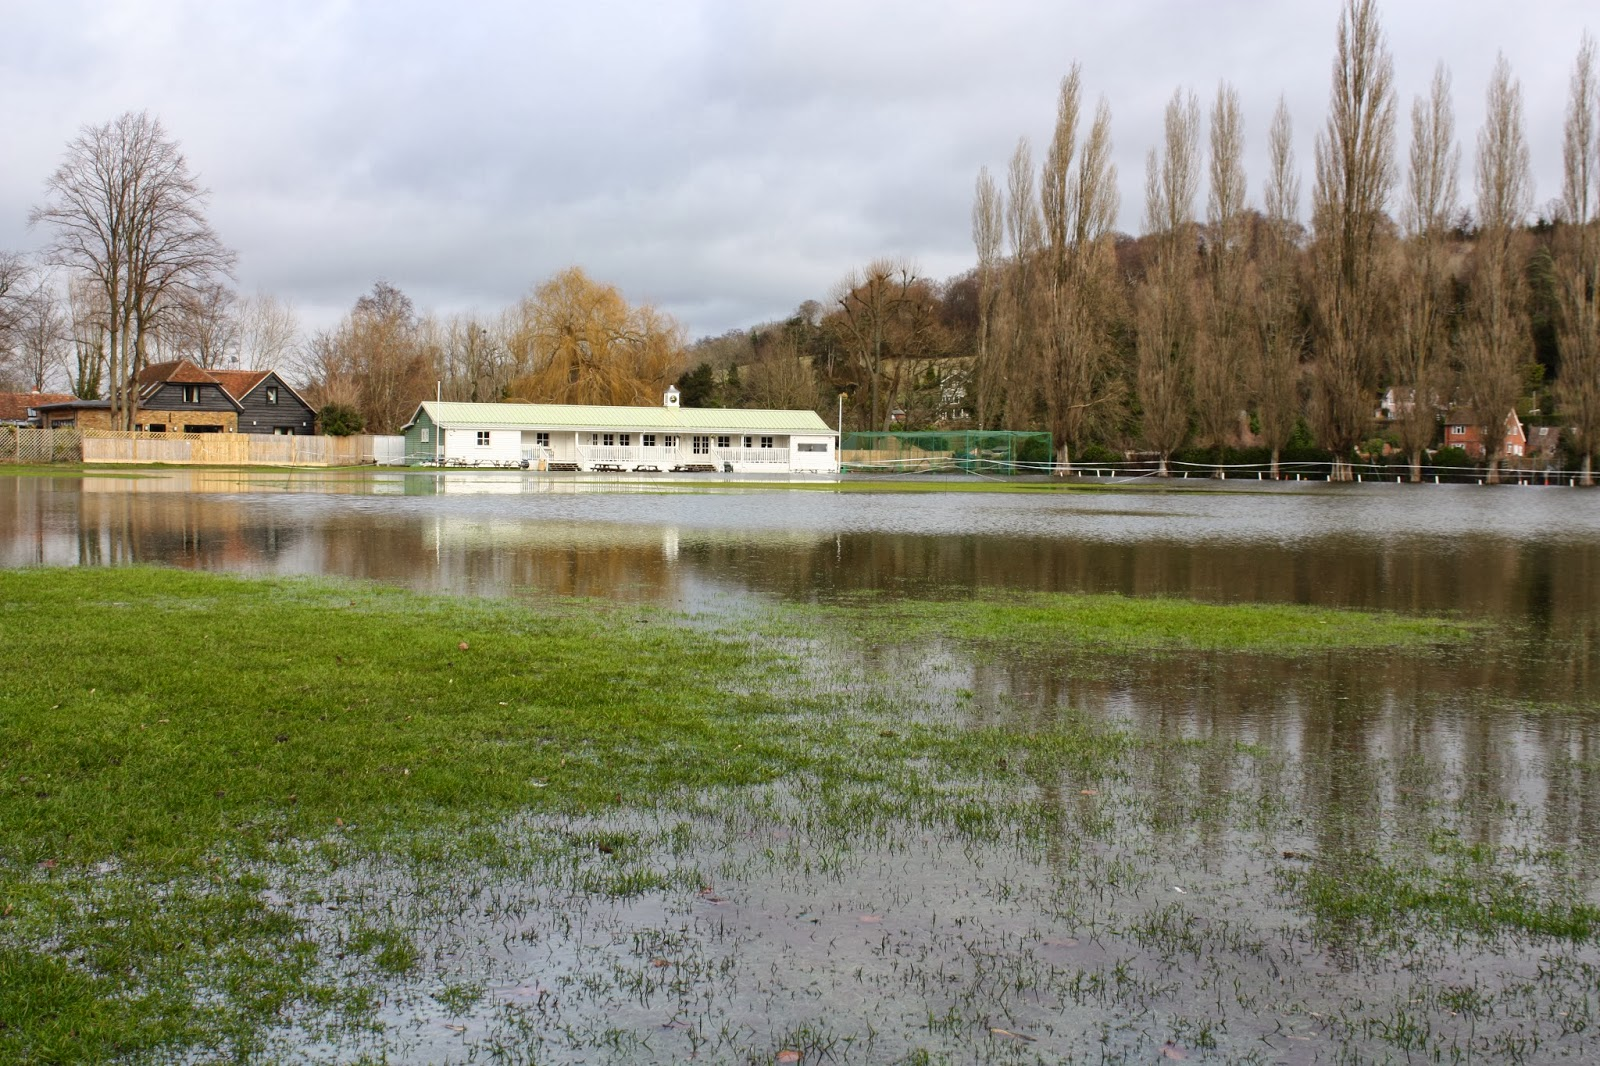 Flooded cricket pitch in Henley on Thames